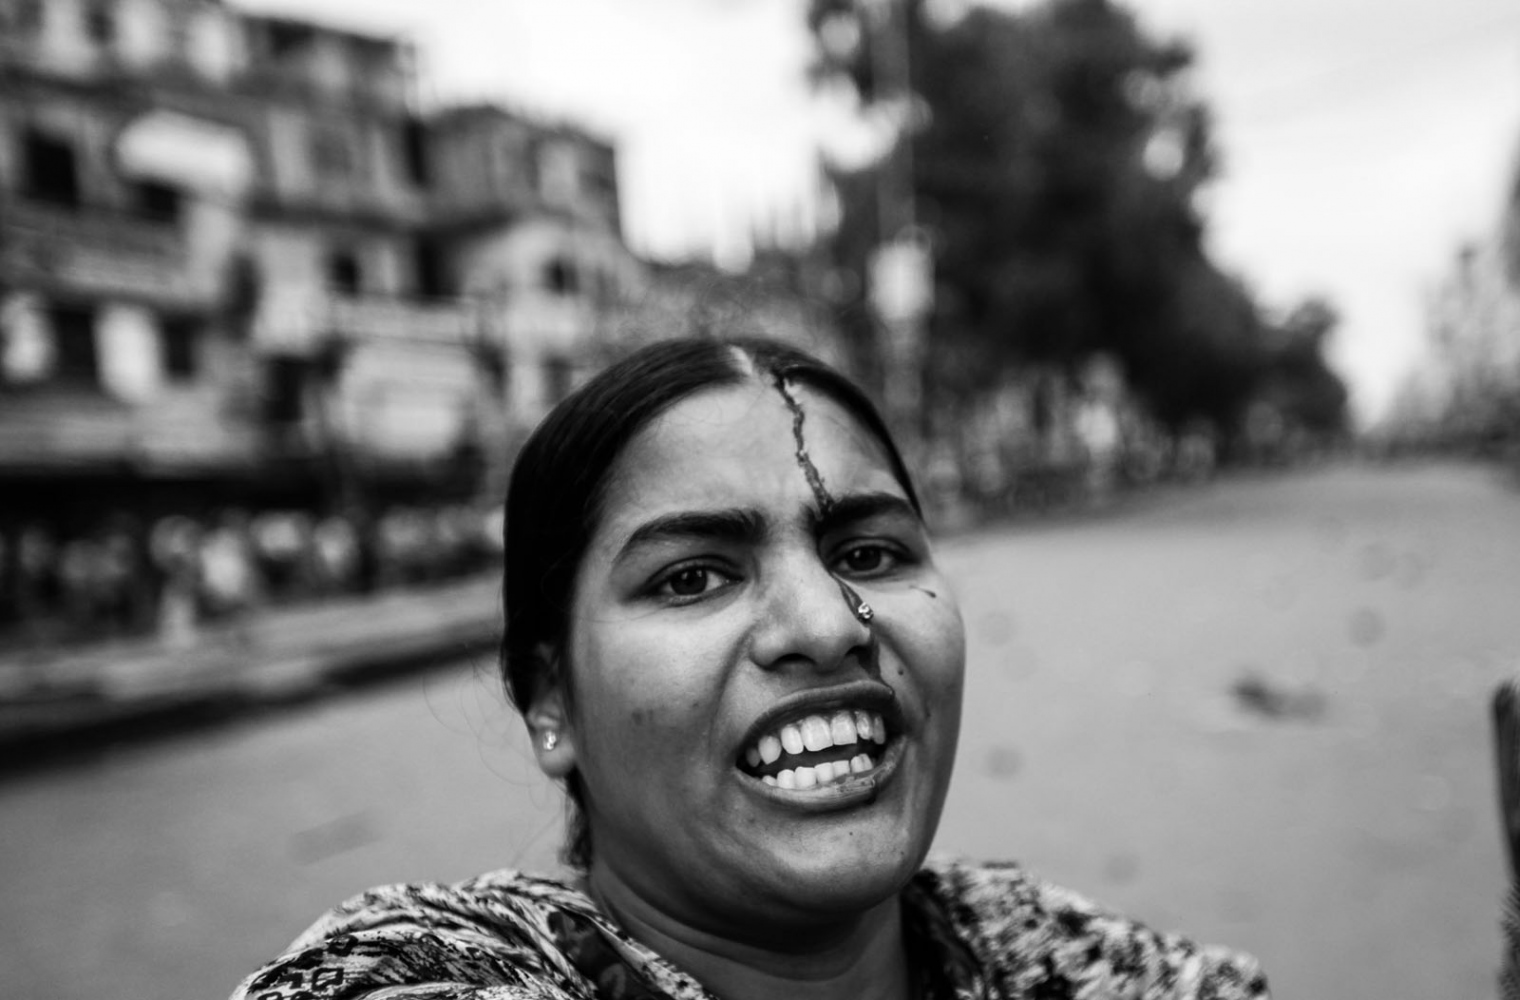 Rahela does not seem to mind the stream of blood coming down her forehead. On 30th June, 2010, 80 garment workers were injured when they took to the streets demanding better pay and the police tried to 'contain' them as ordered